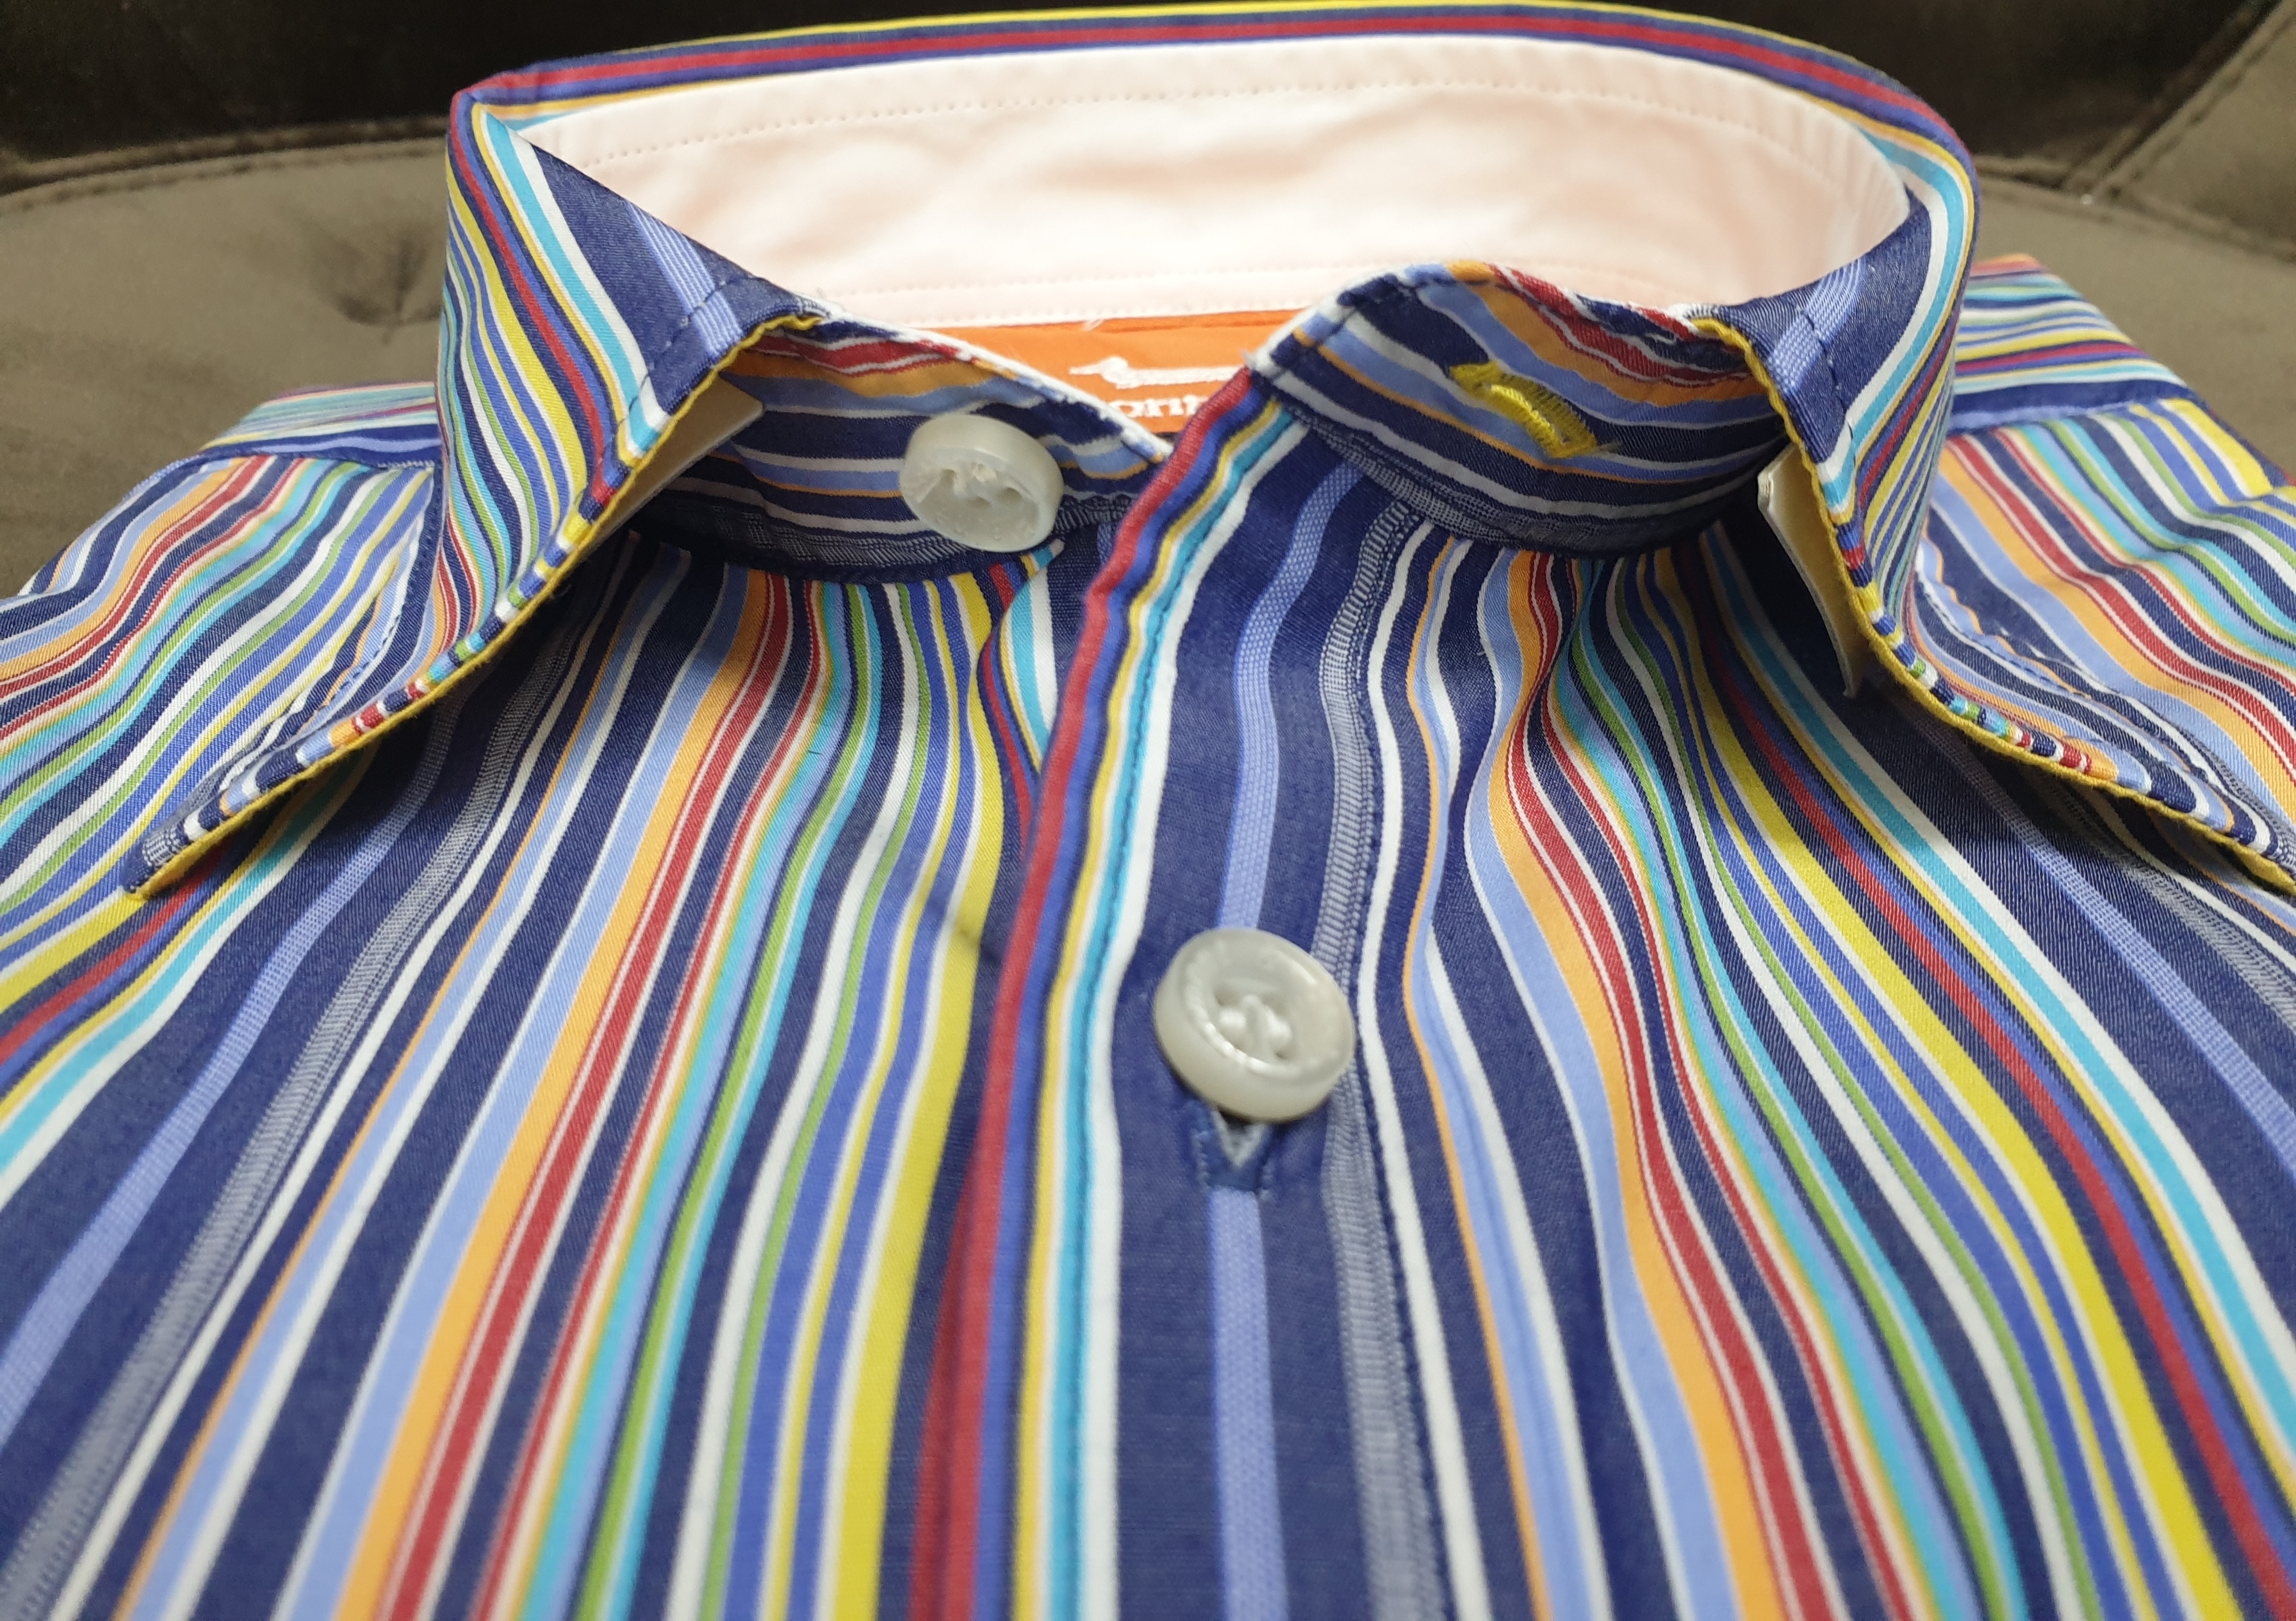 Camicia Harmont & Blaine CRB025N 010171